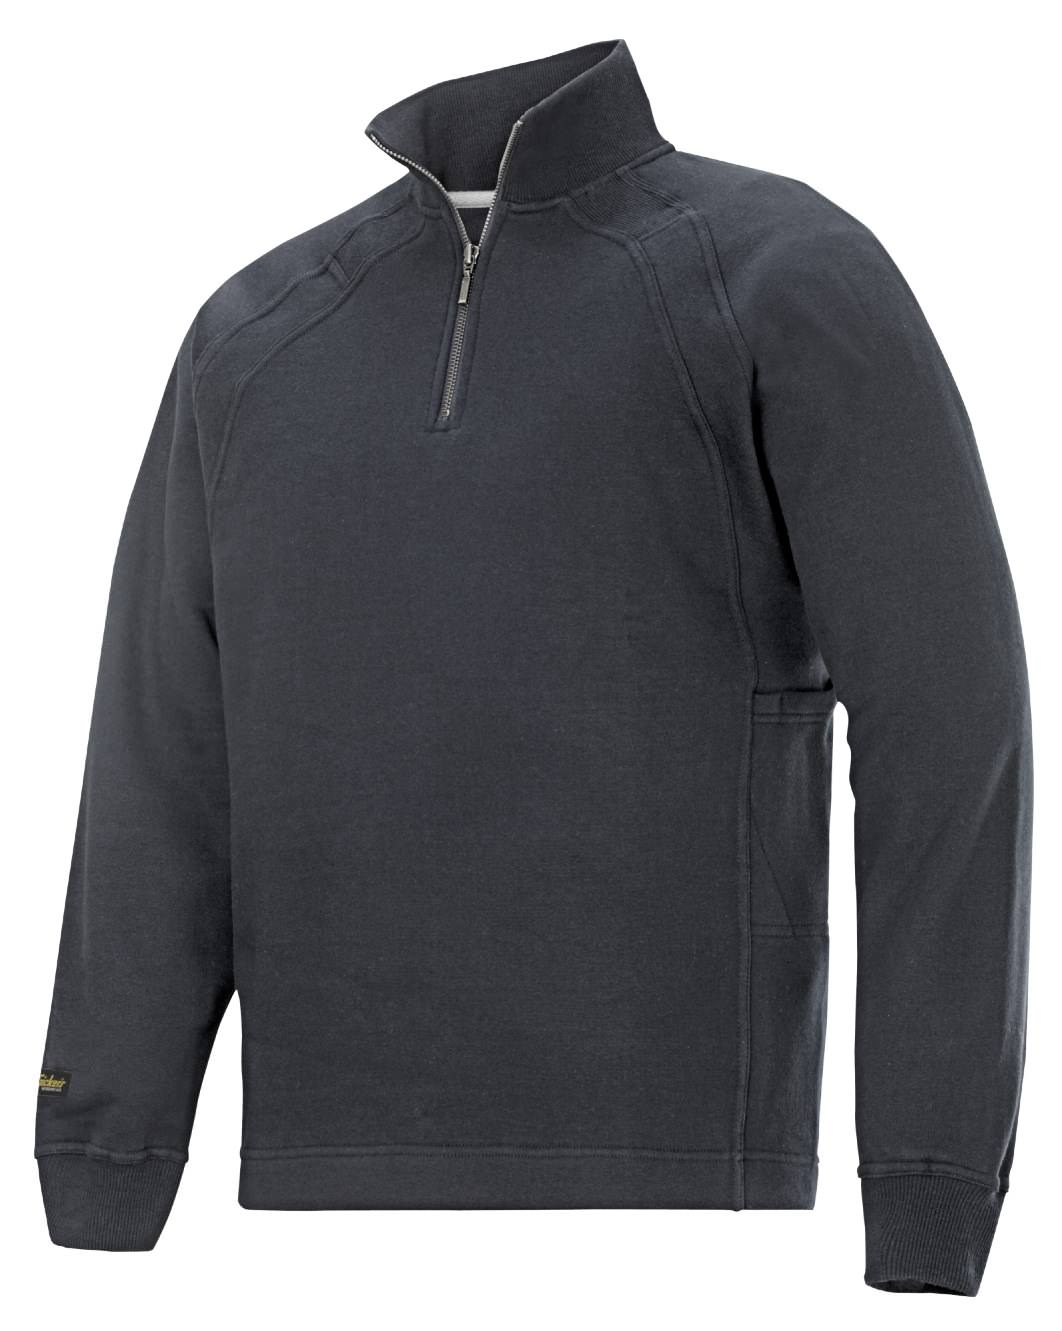 Snickers 2813 ½ Zip Sweatshirt with MultiPockets